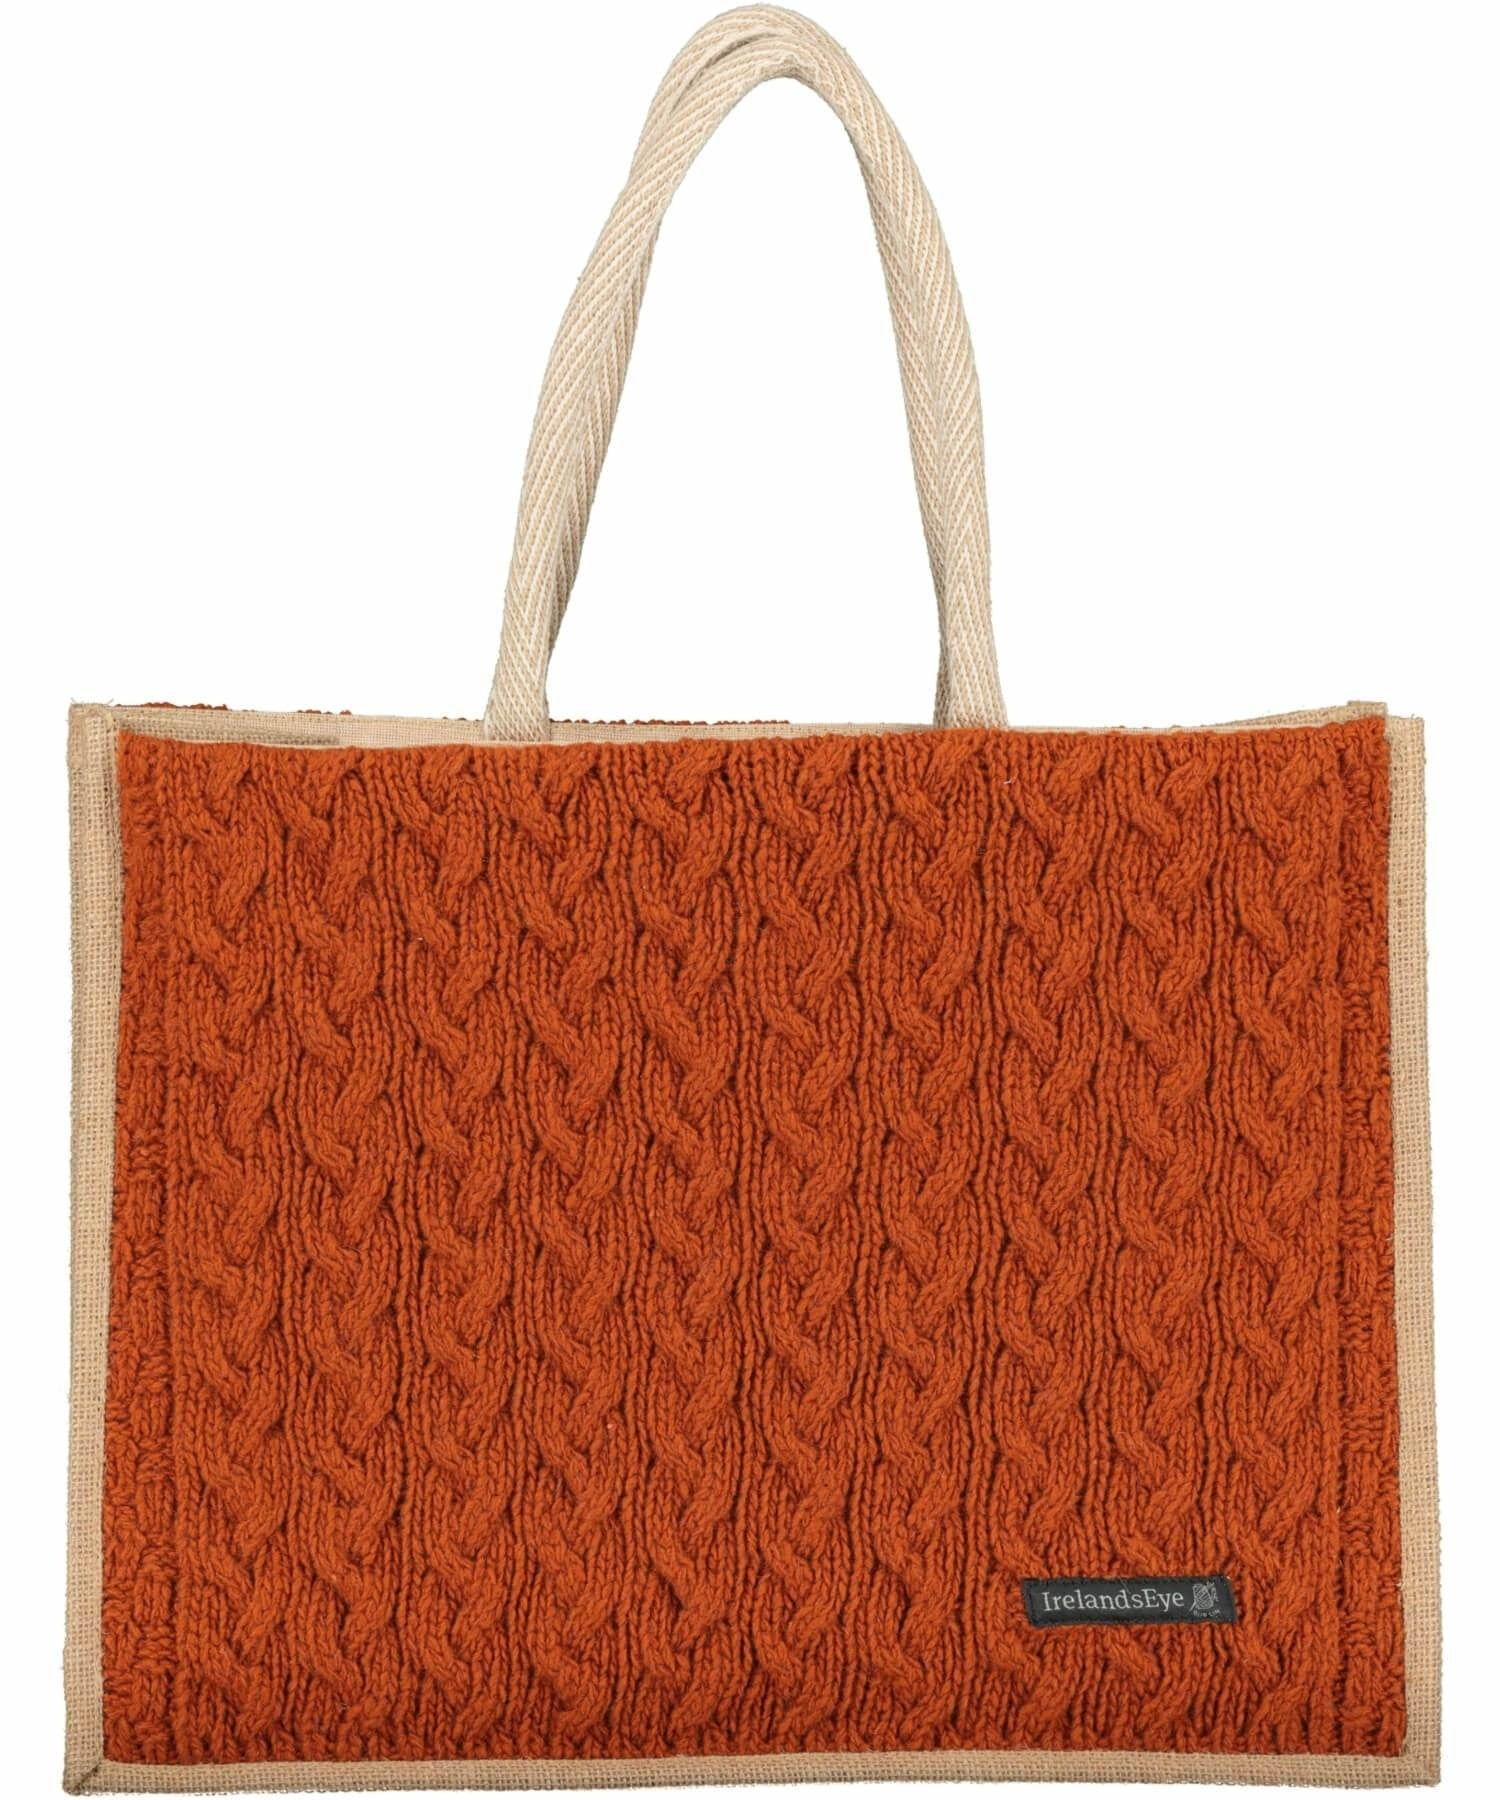 Luxe Cable Bag - Terra Cotta - [Irelands Eye] - Bags, Purses & Wallets - Irish Gifts